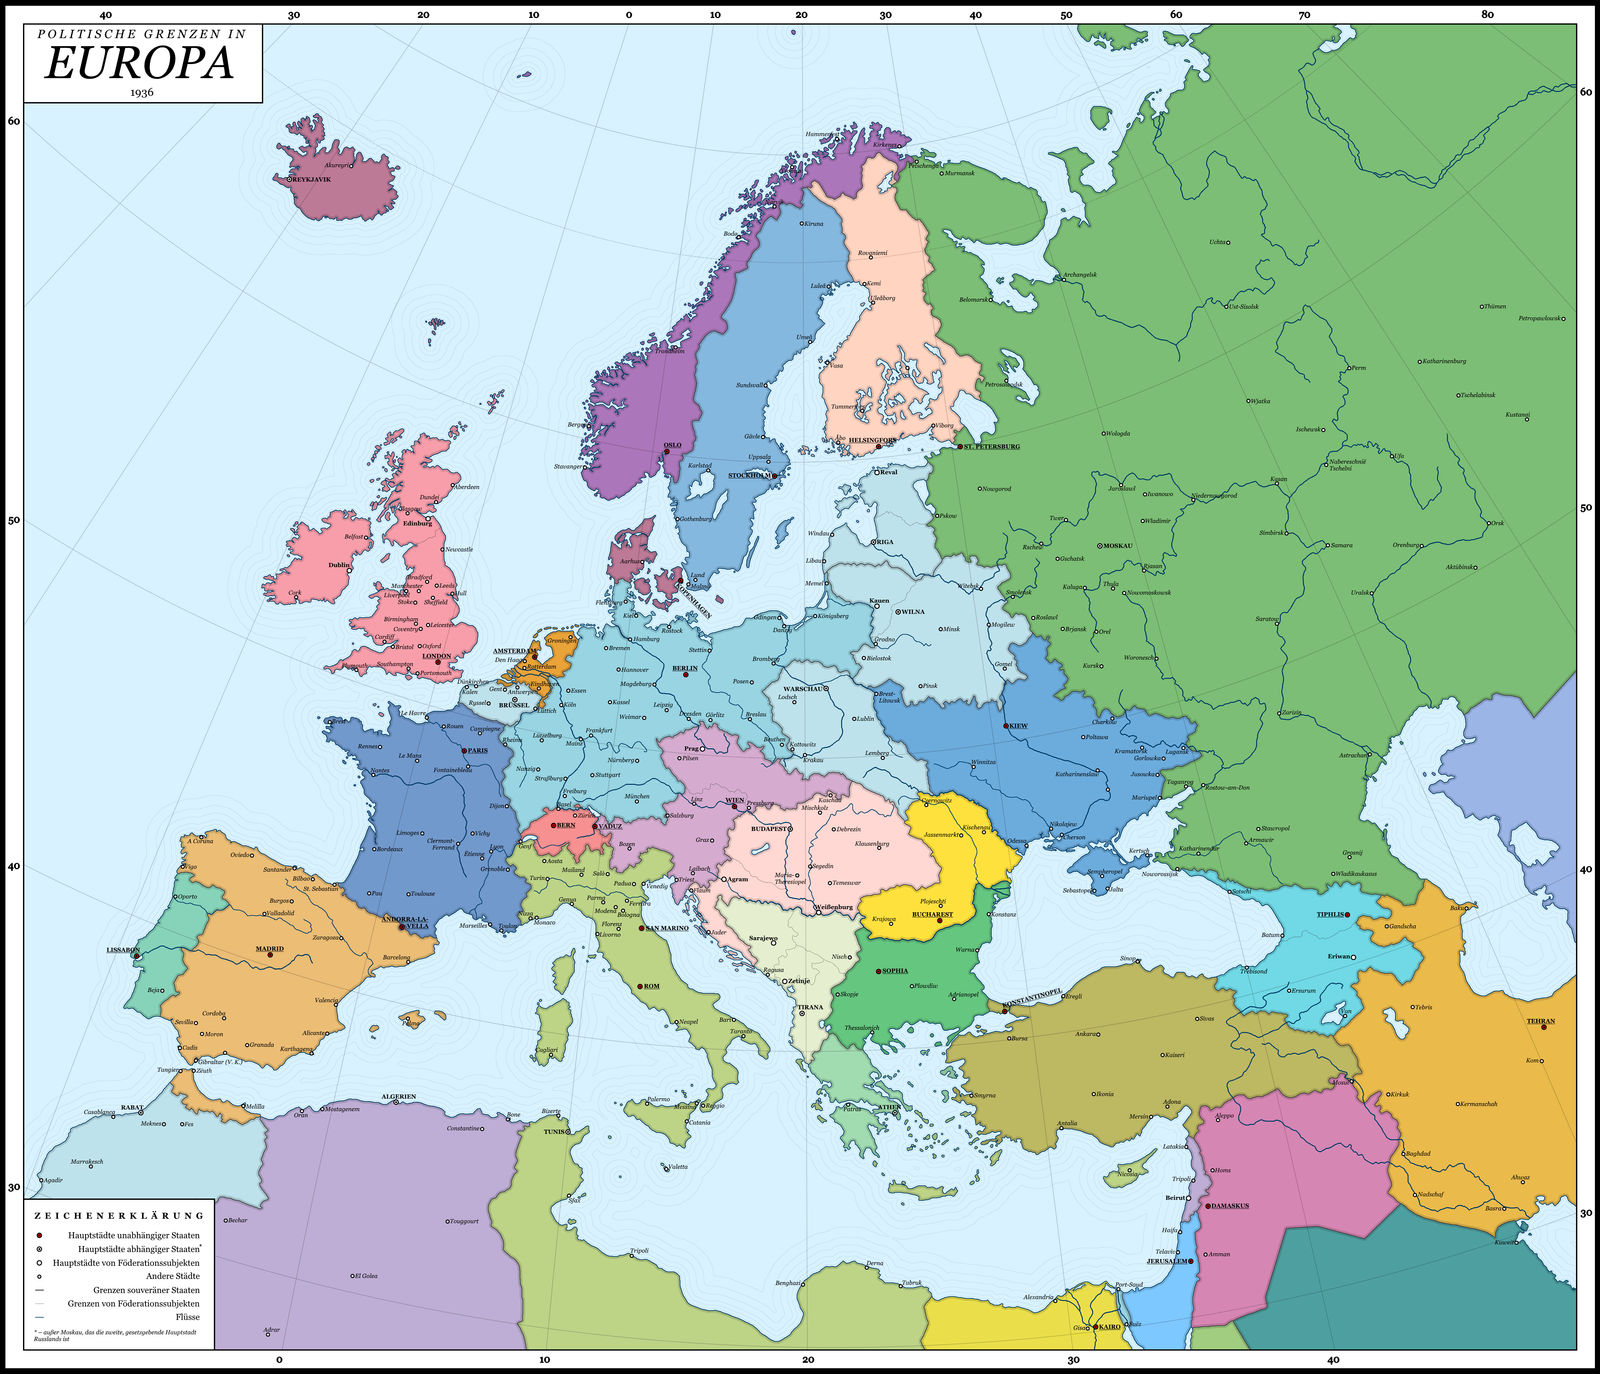 Europe, 1936 by mihaly-vadorgrafett on DeviantArt